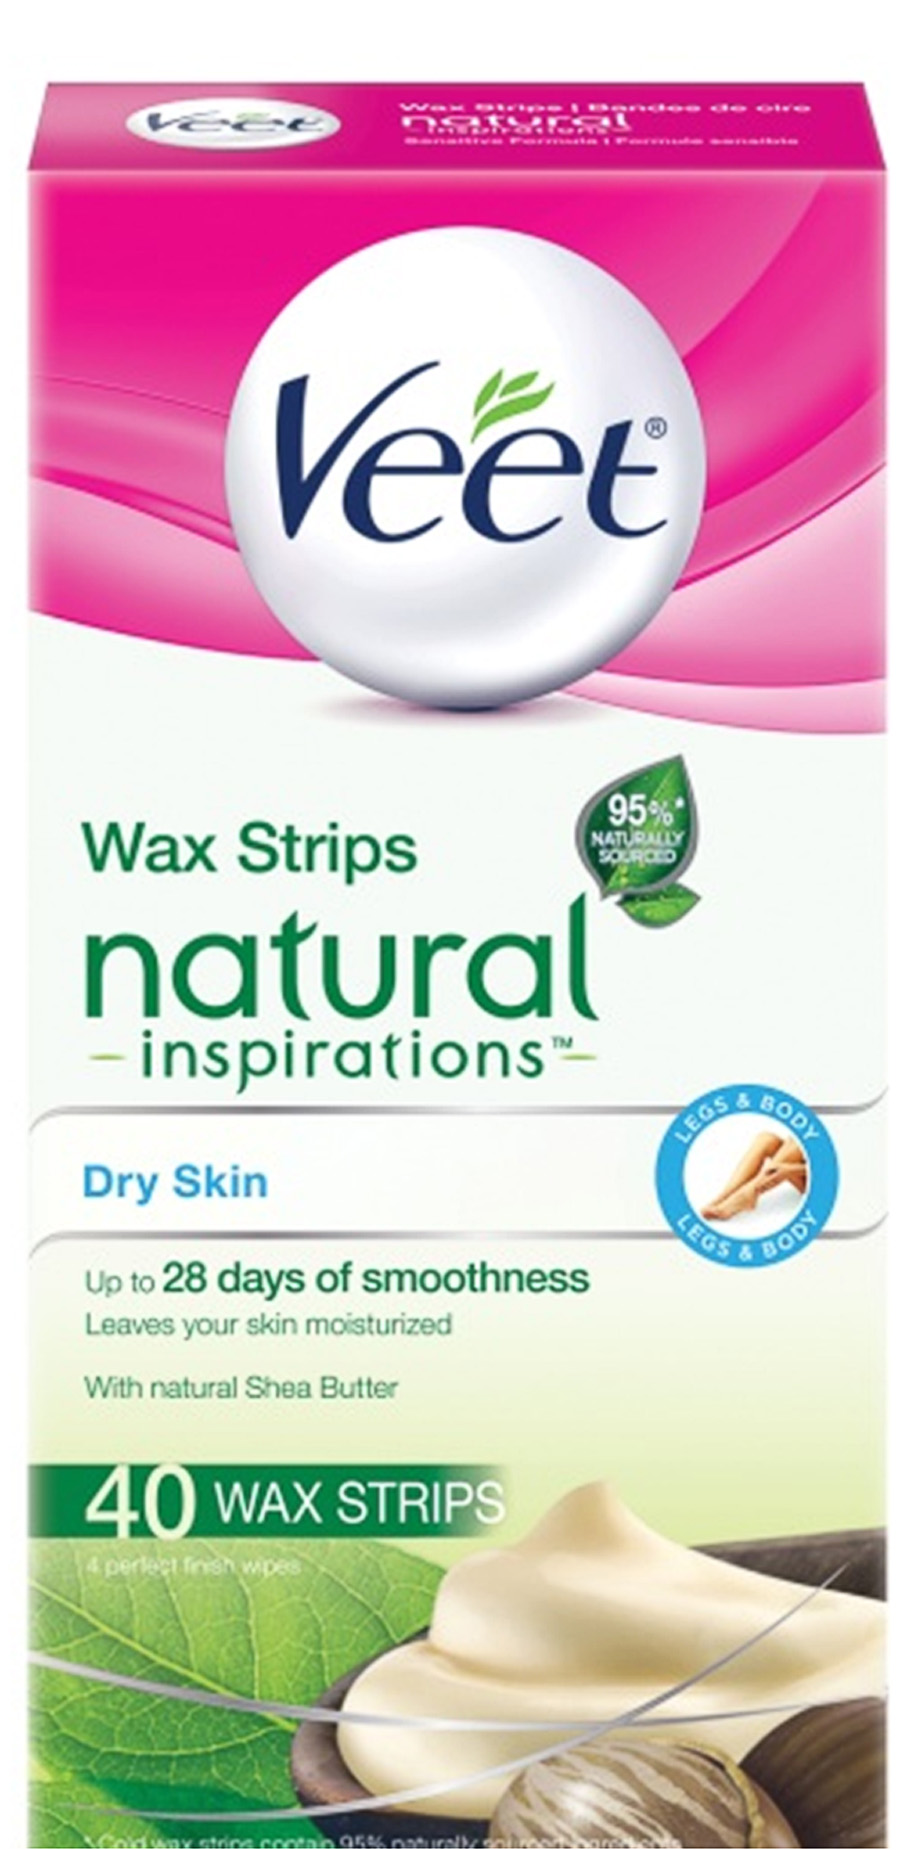 VEET® Natural Inspirations™ Wax Strips - Dry Skin (Strips)